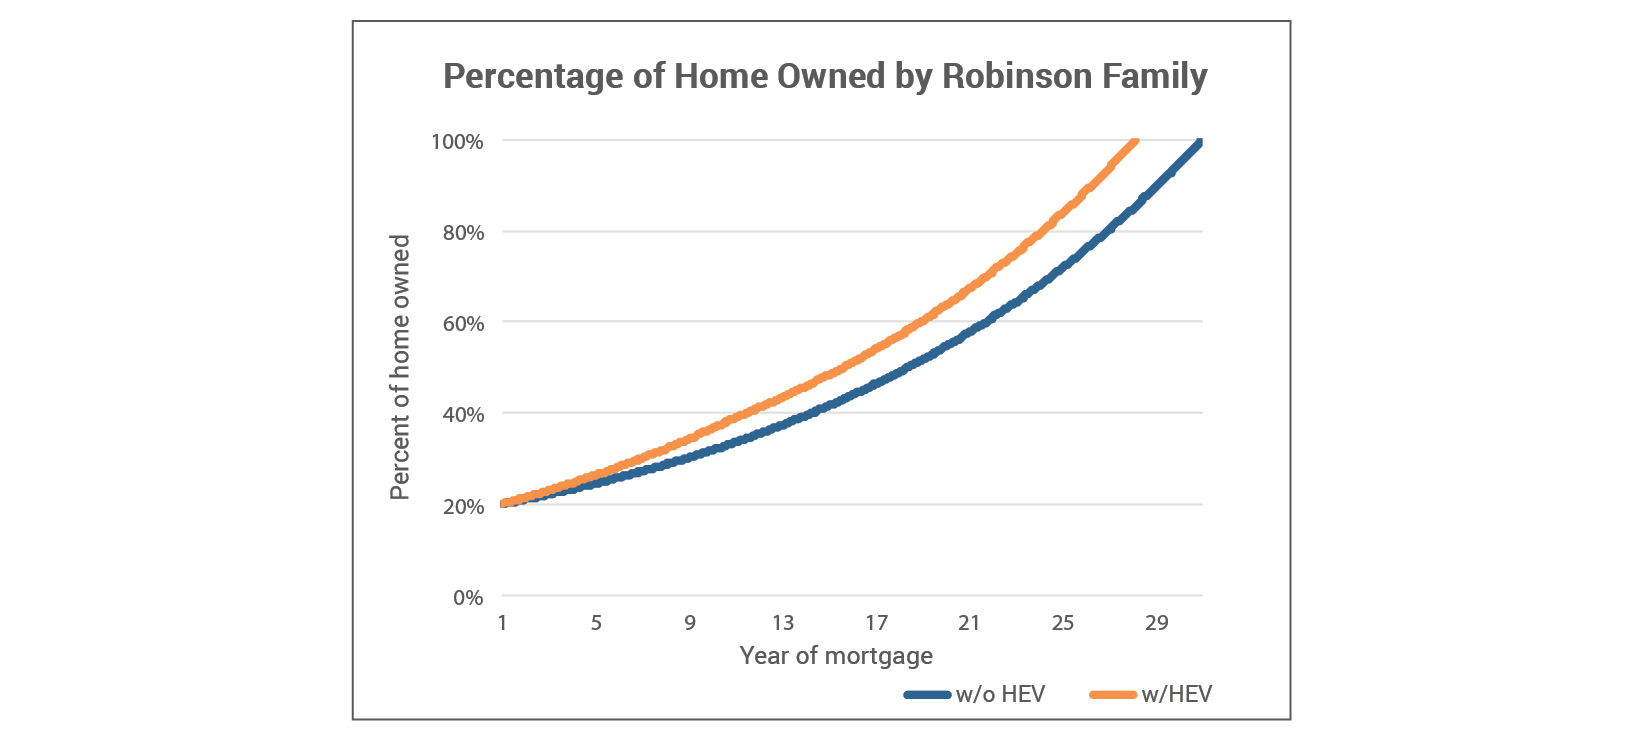 Percentage of Home Owned by Robinson Family